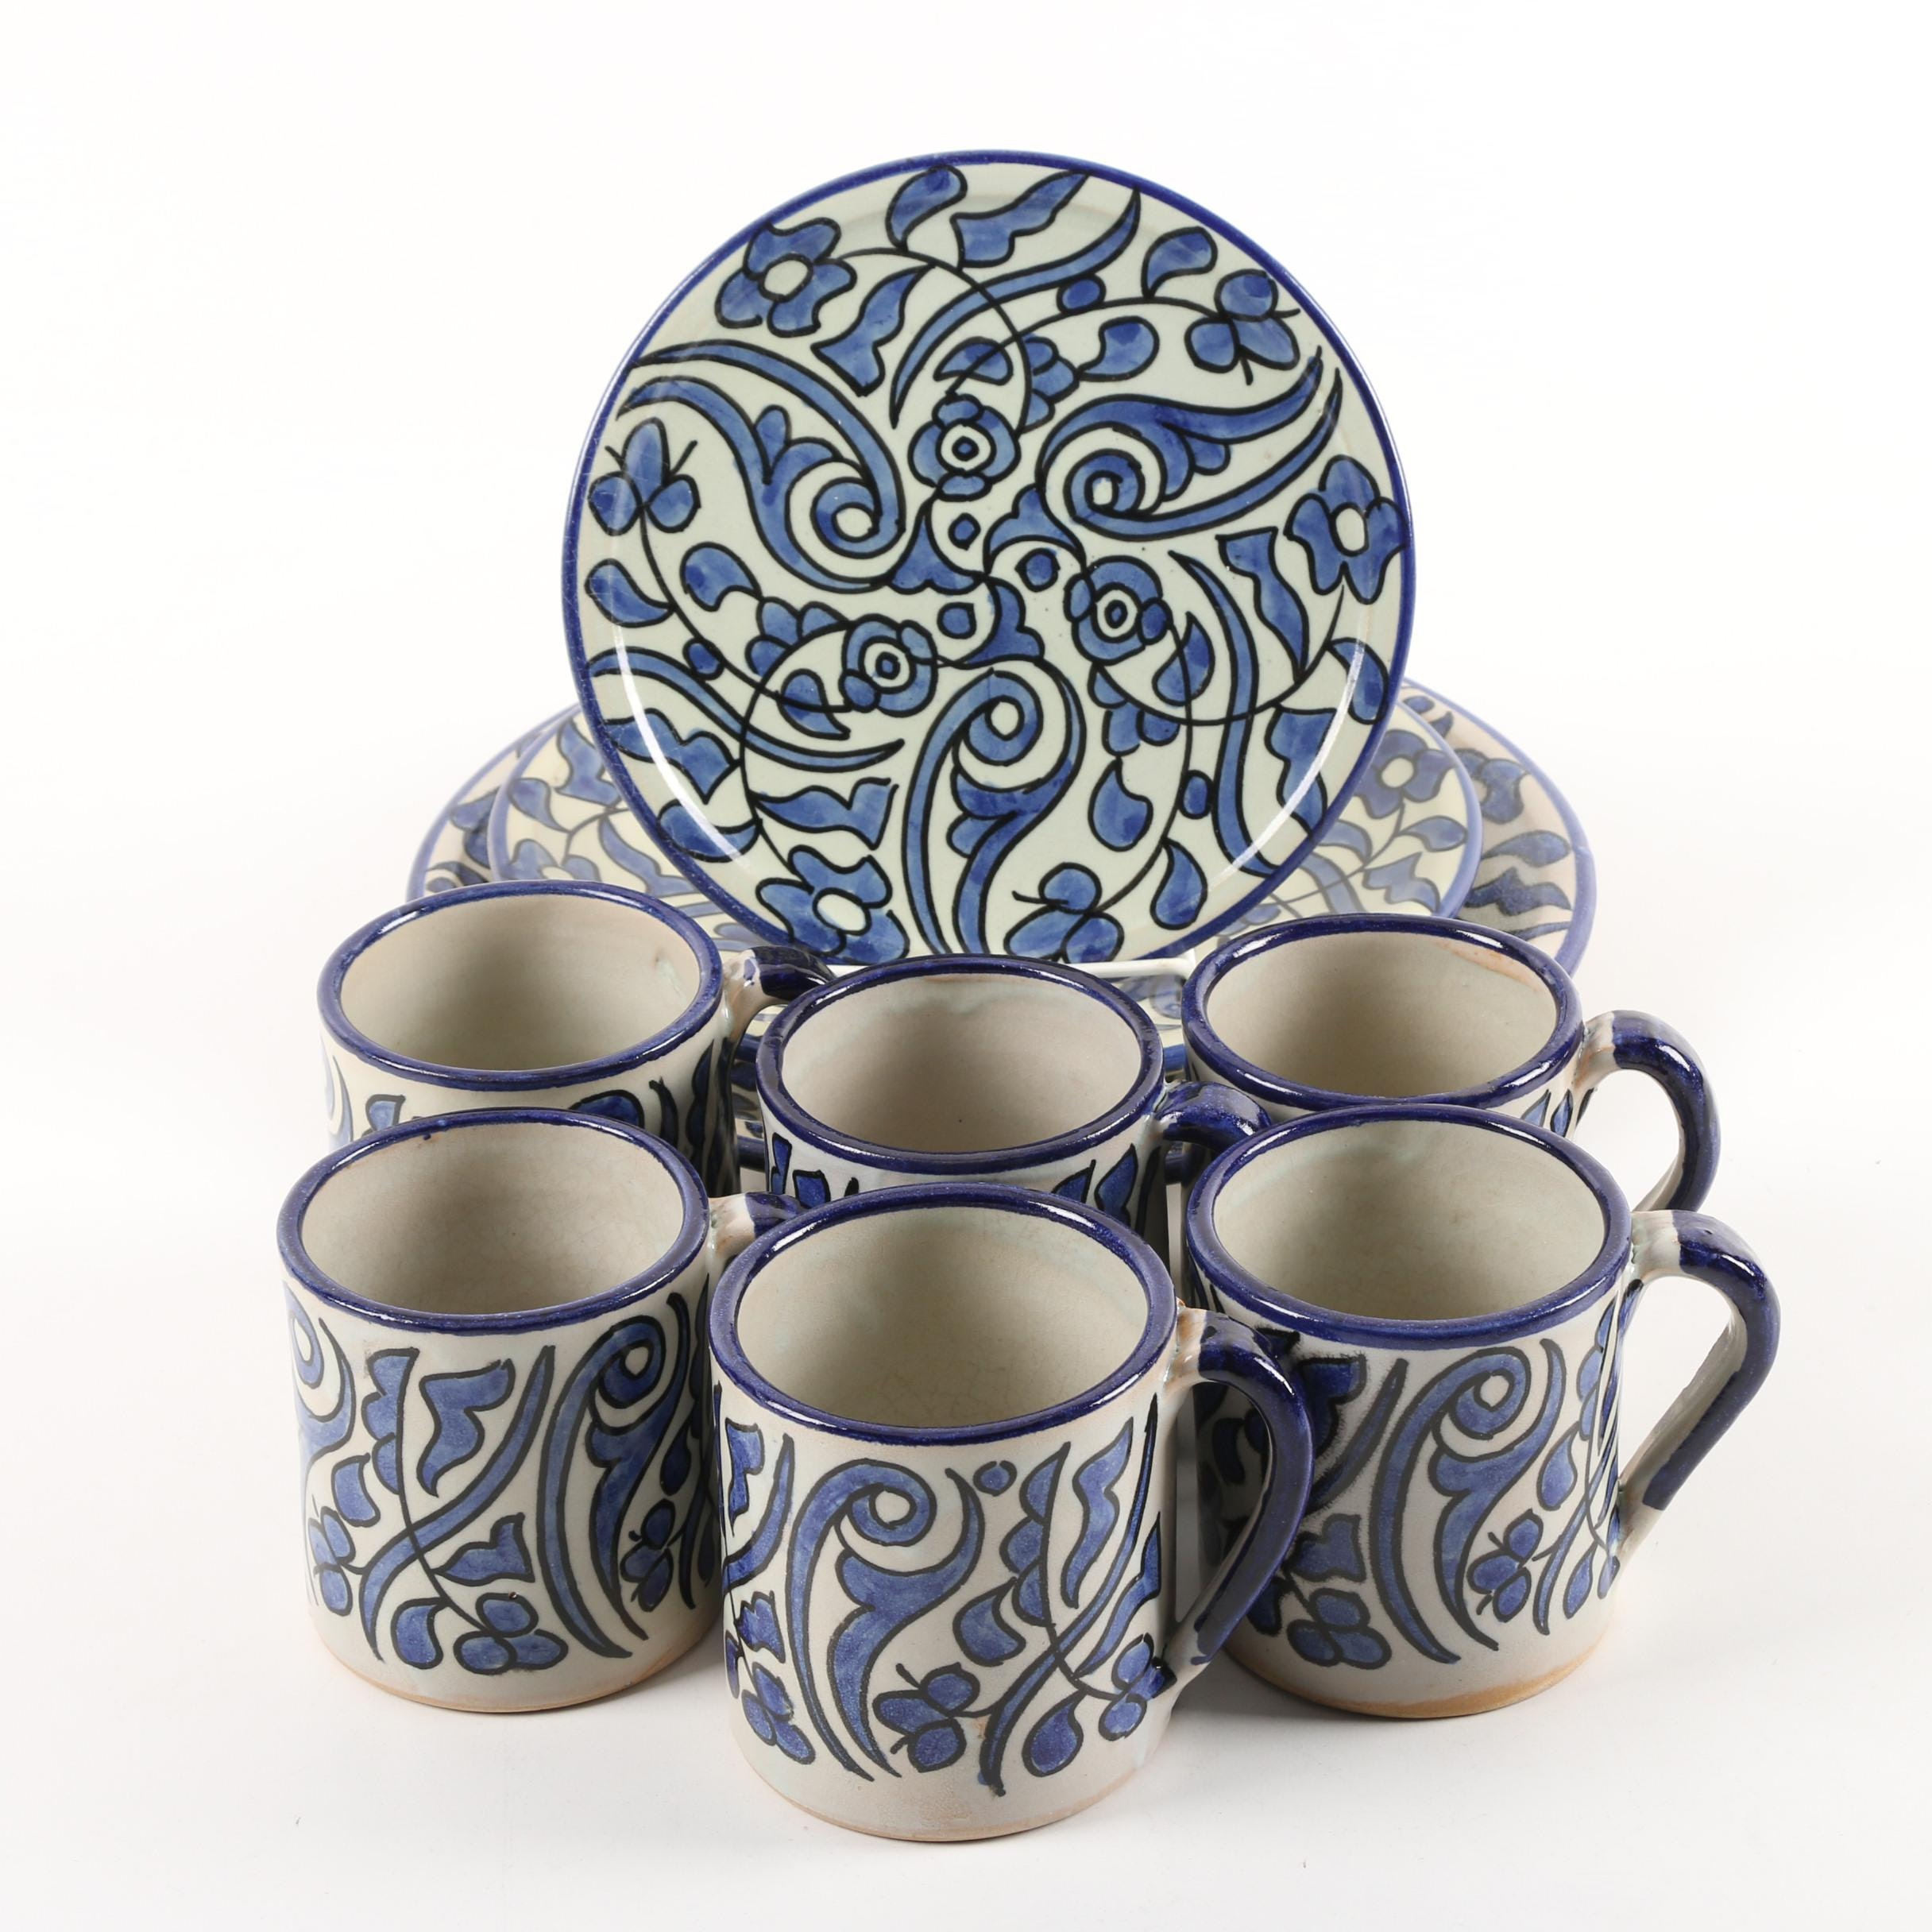 Moroccan Hand-Painted Ceramic Plates and Mugs